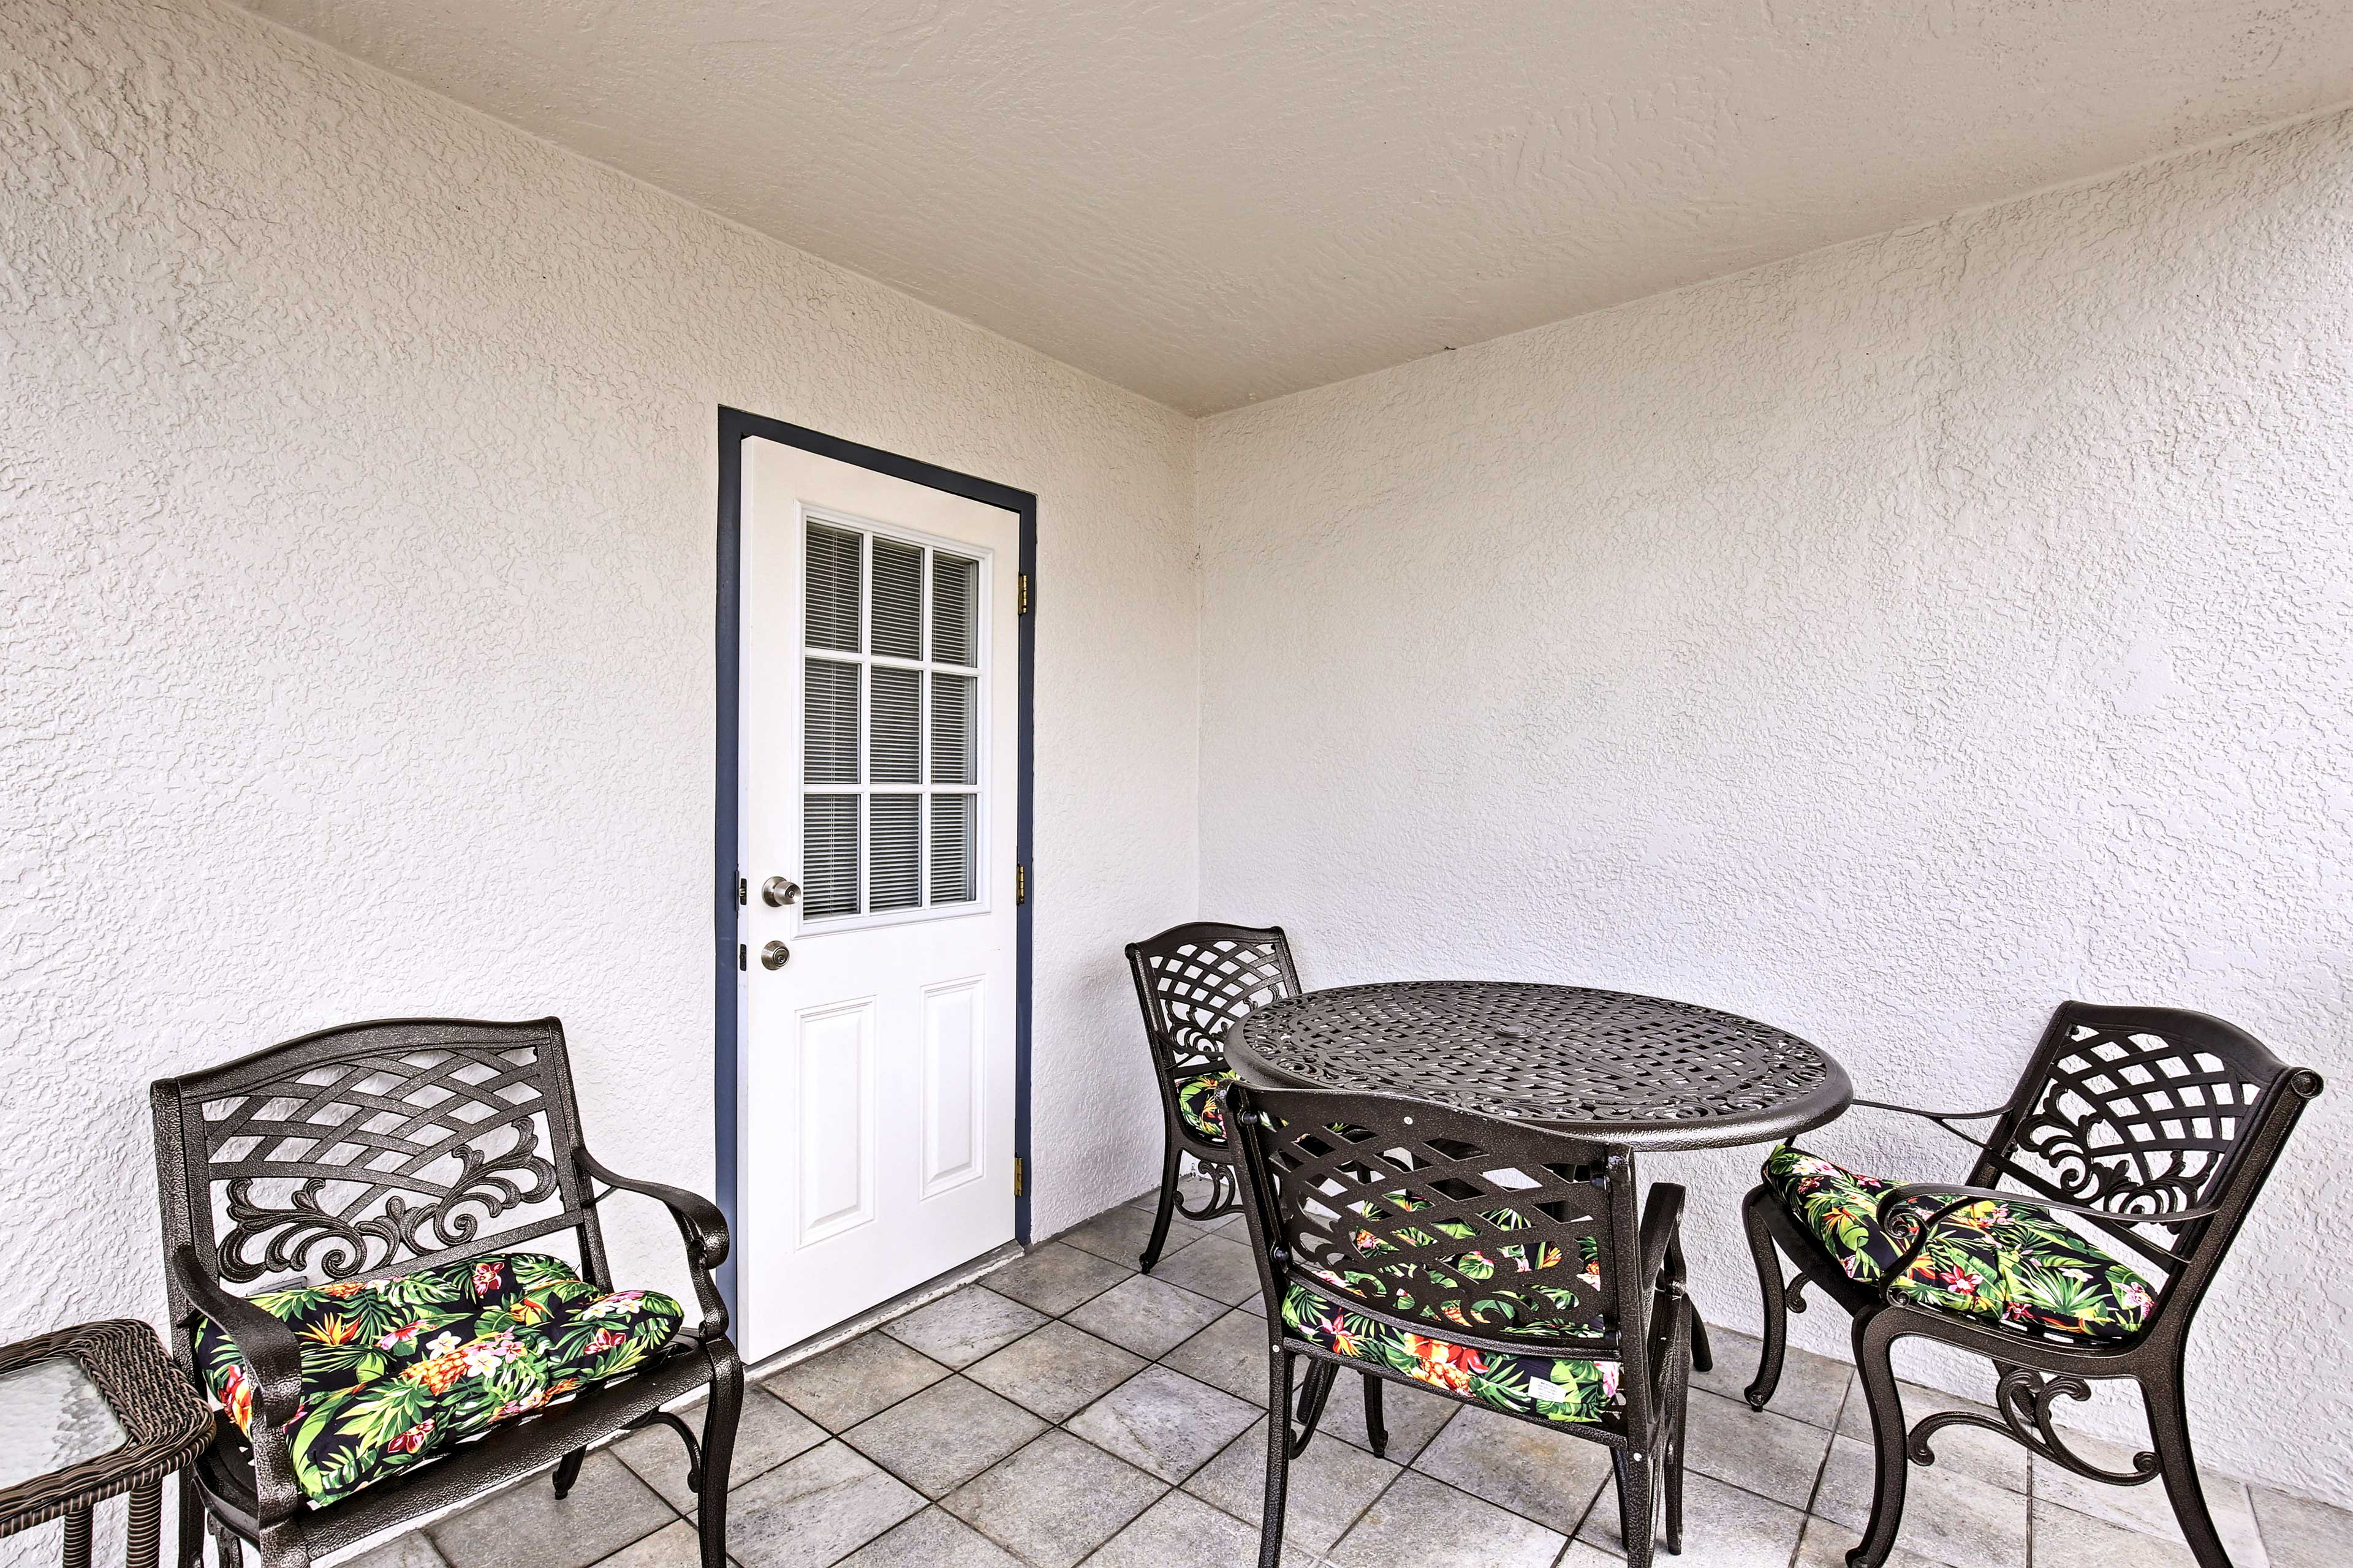 Meals alfresco are a must in this quaint outdoor space.